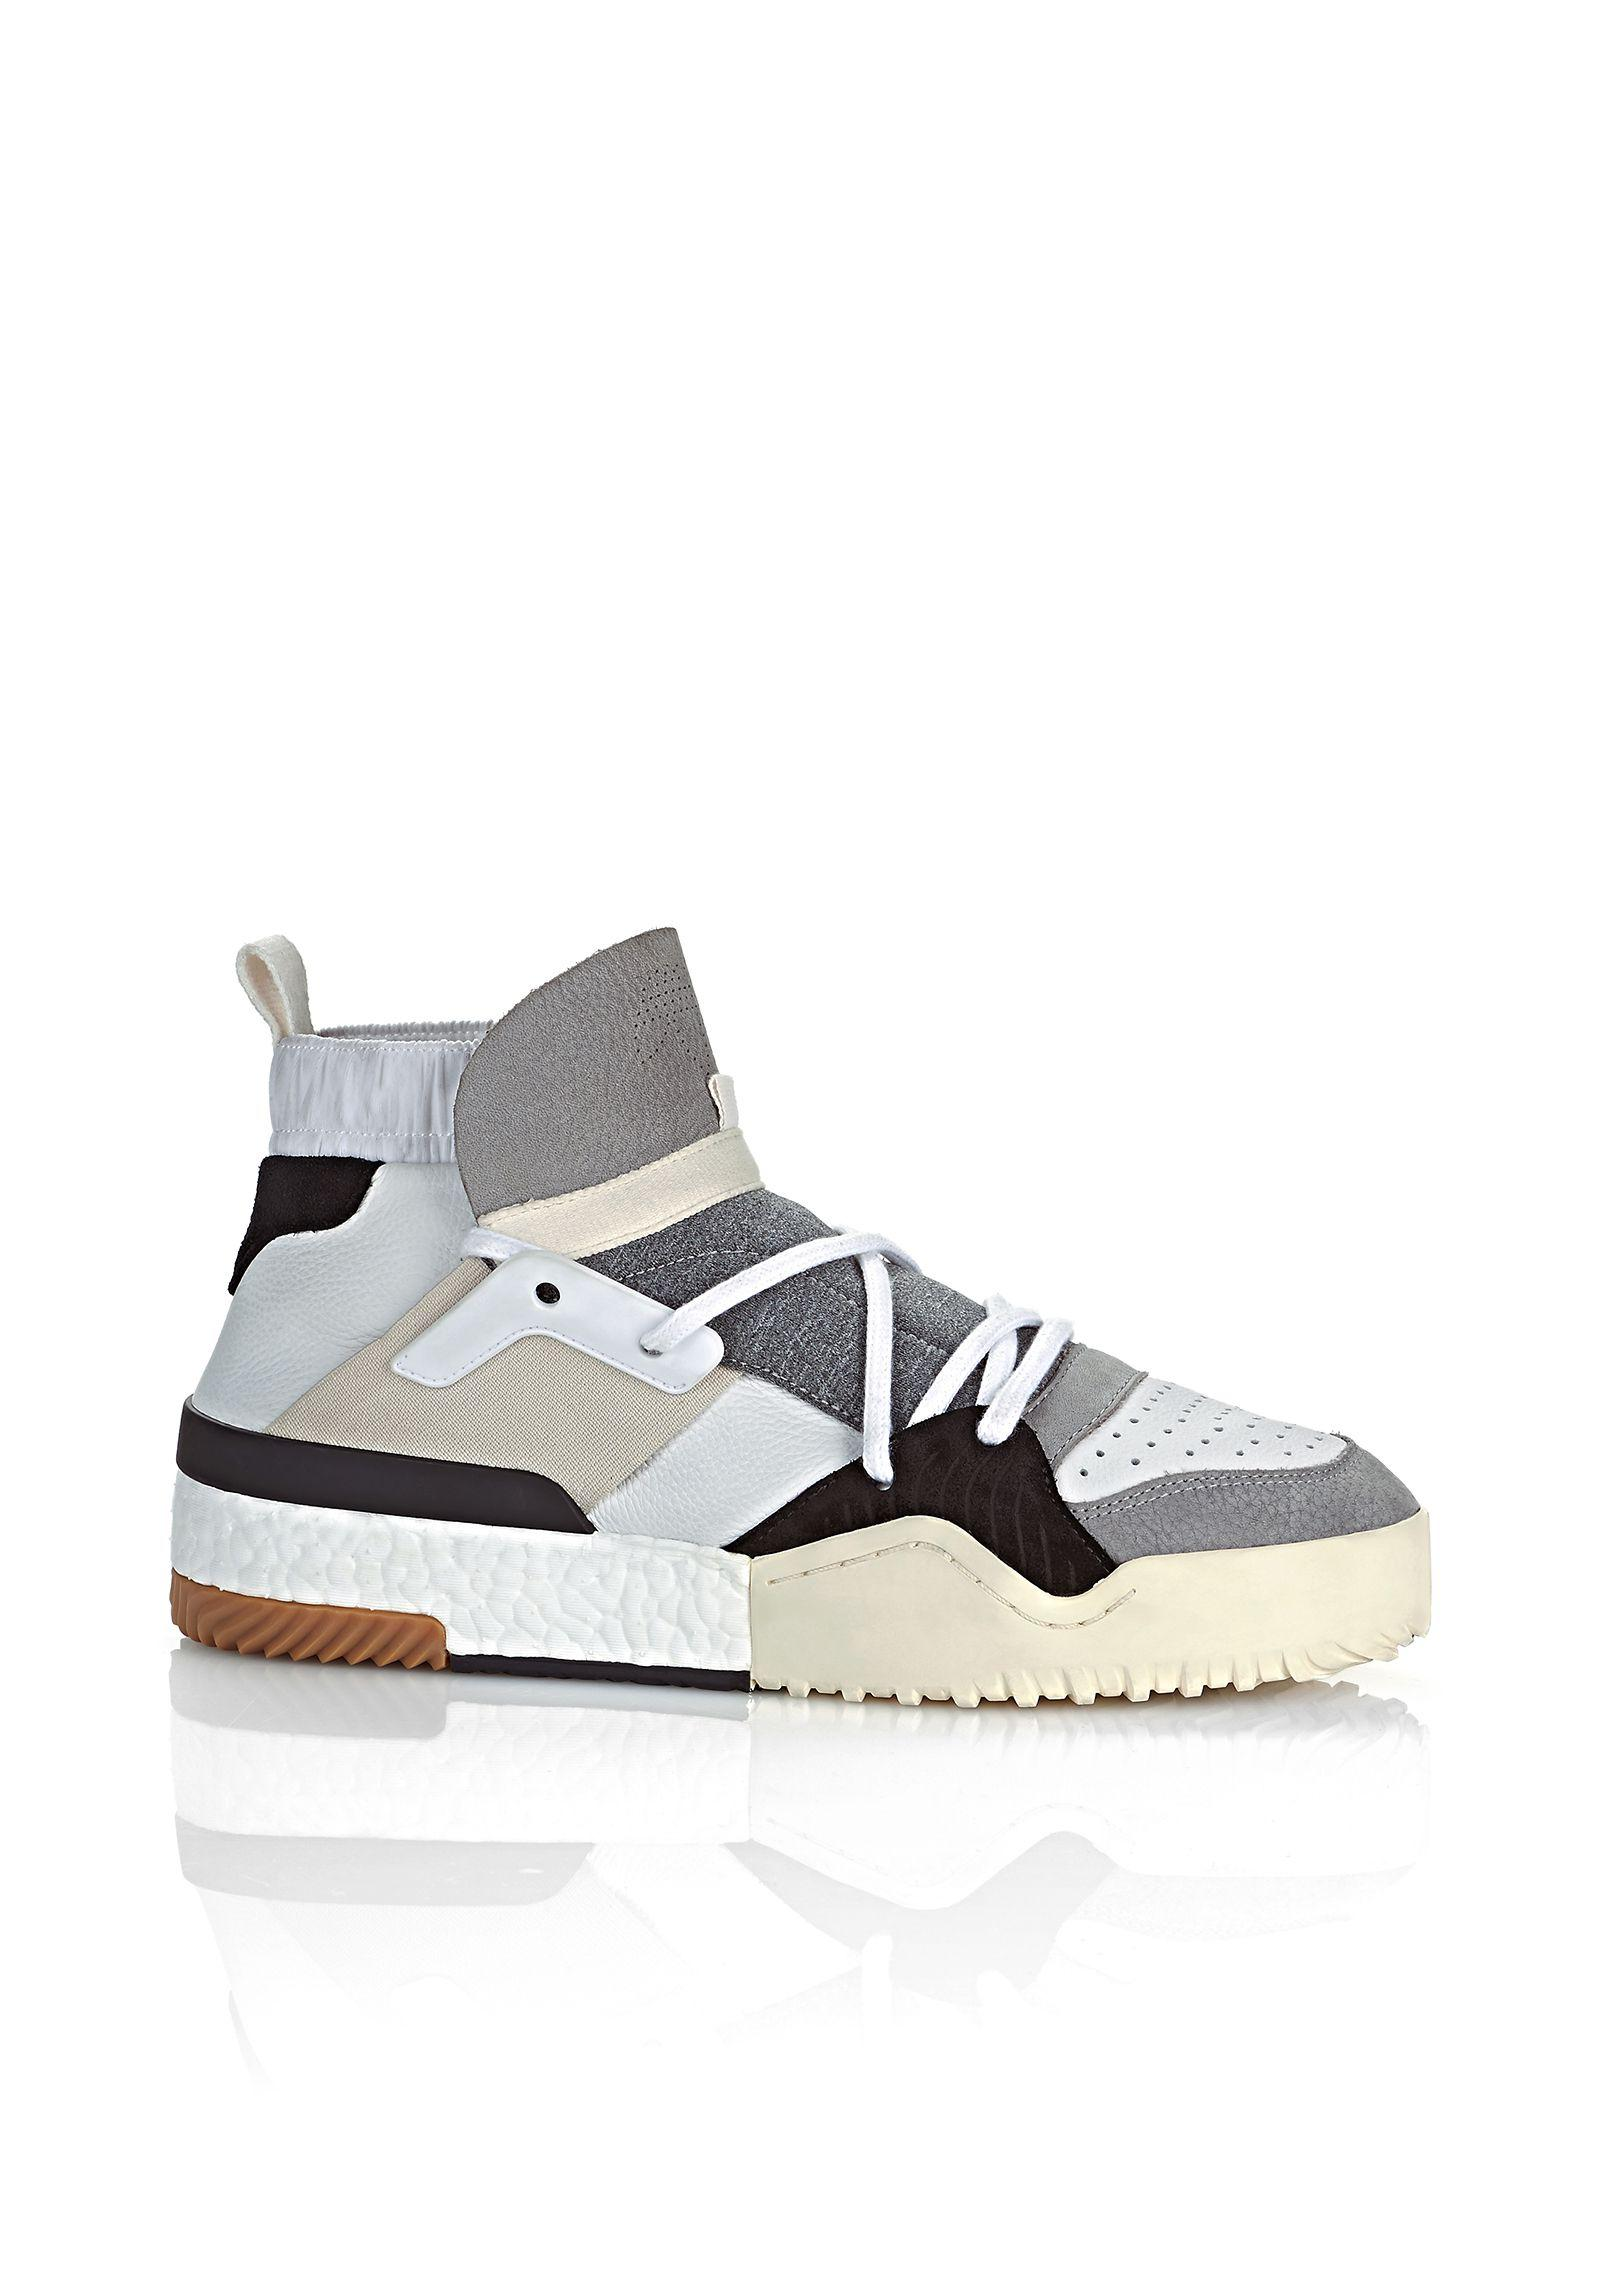 cad252ef4877 By Lyst Alexander Adidas White X Originals Aw Wang Bball Shoes In rX6rOwBqT